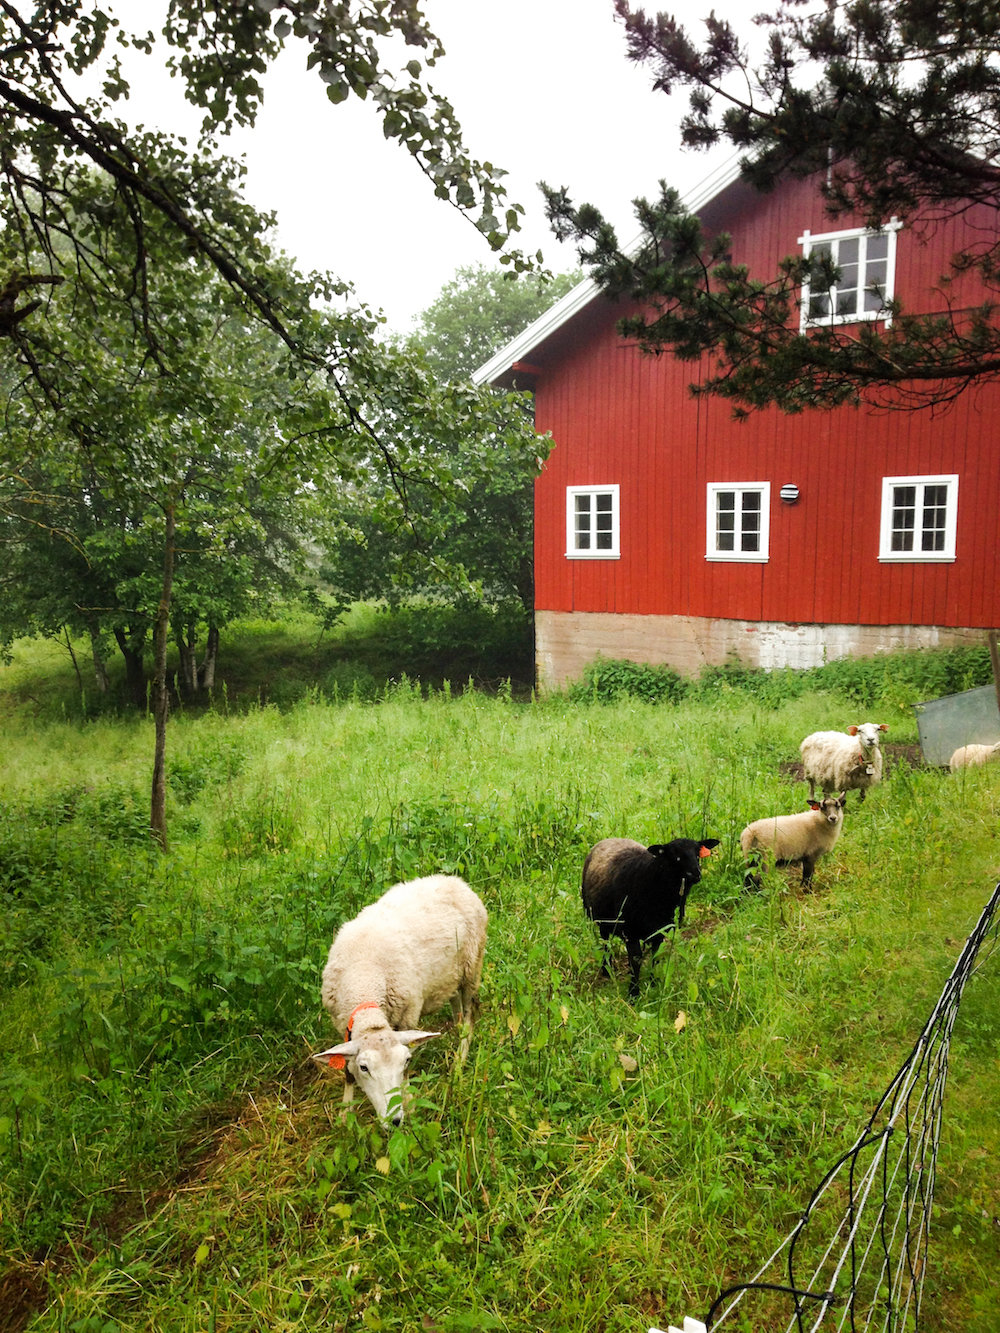 Farmhouse and sheep (Eat Me. Drink Me.)